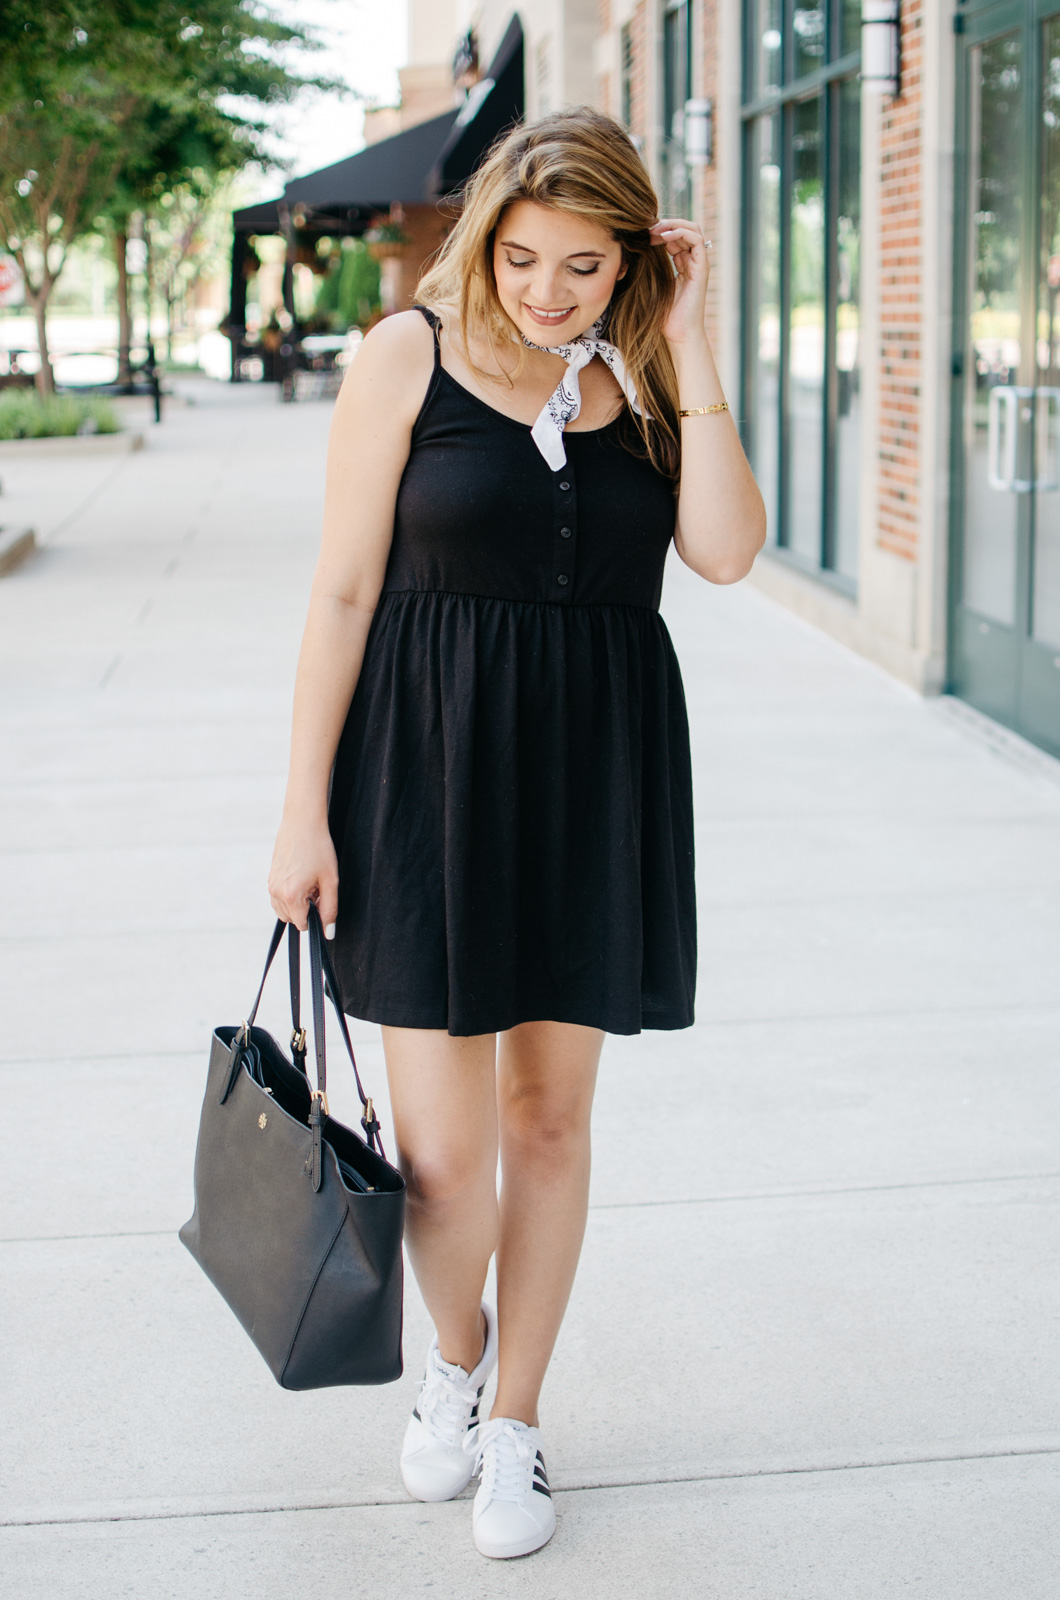 sundress with a neck scarf - black sundress with bandana scarf | For more cute Summer outfits, head to bylaurenm.com!